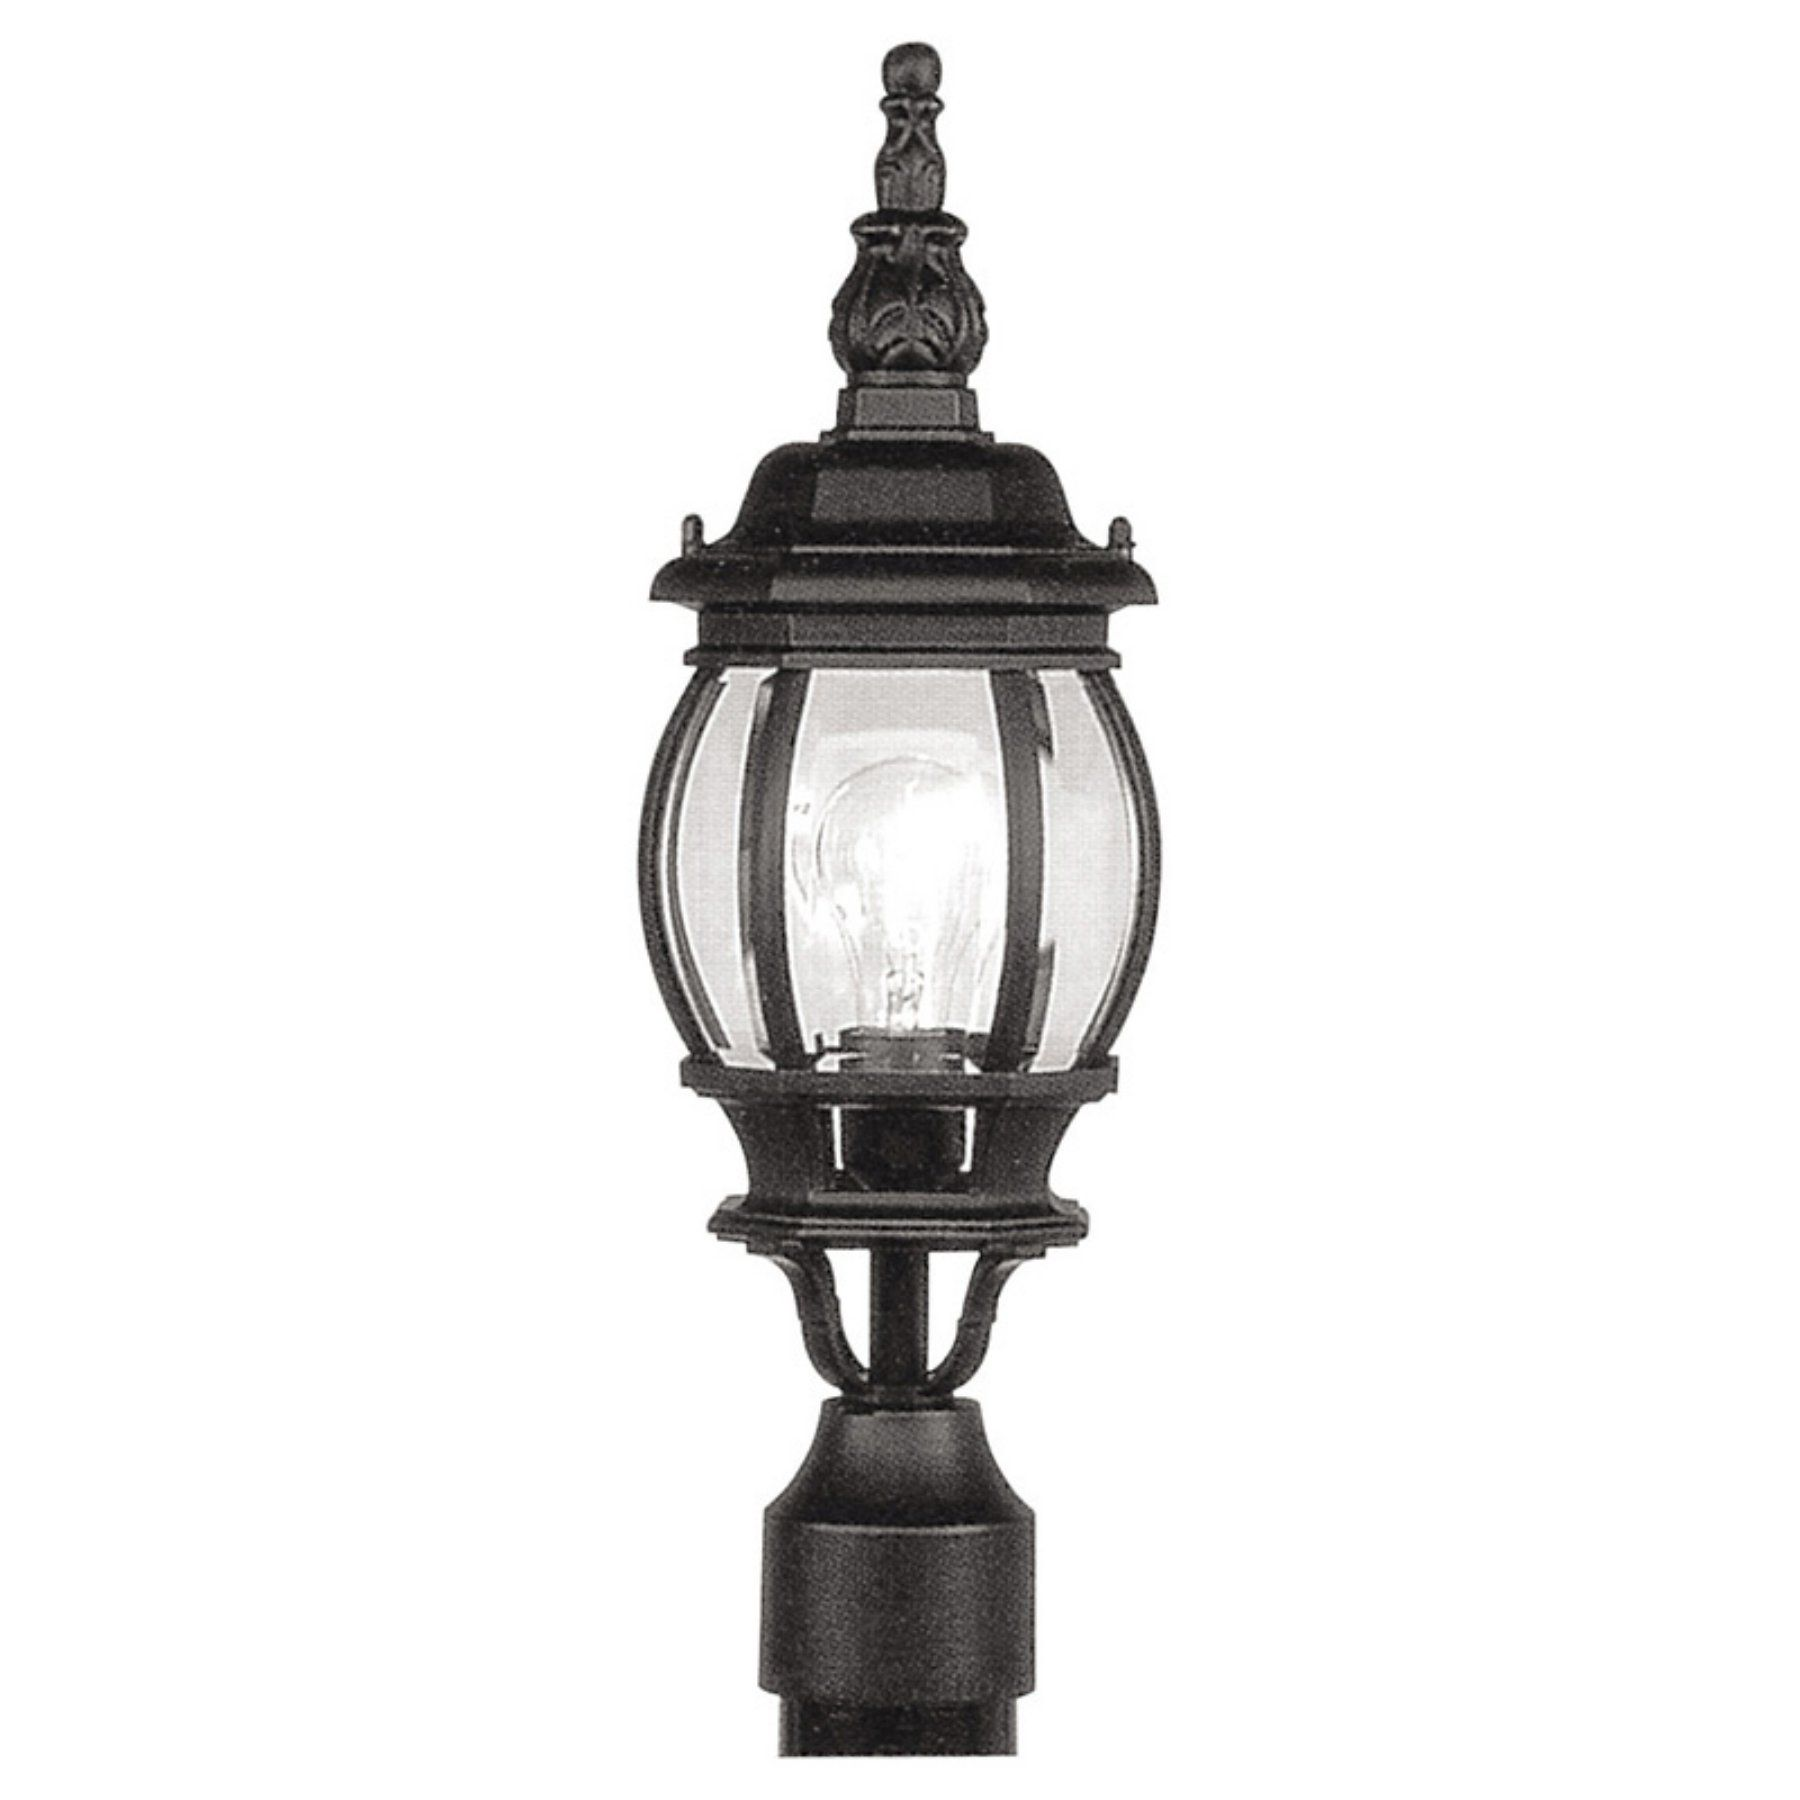 Livex Frontenac 7522 04 Outdoor Post Lantern  185H In Black